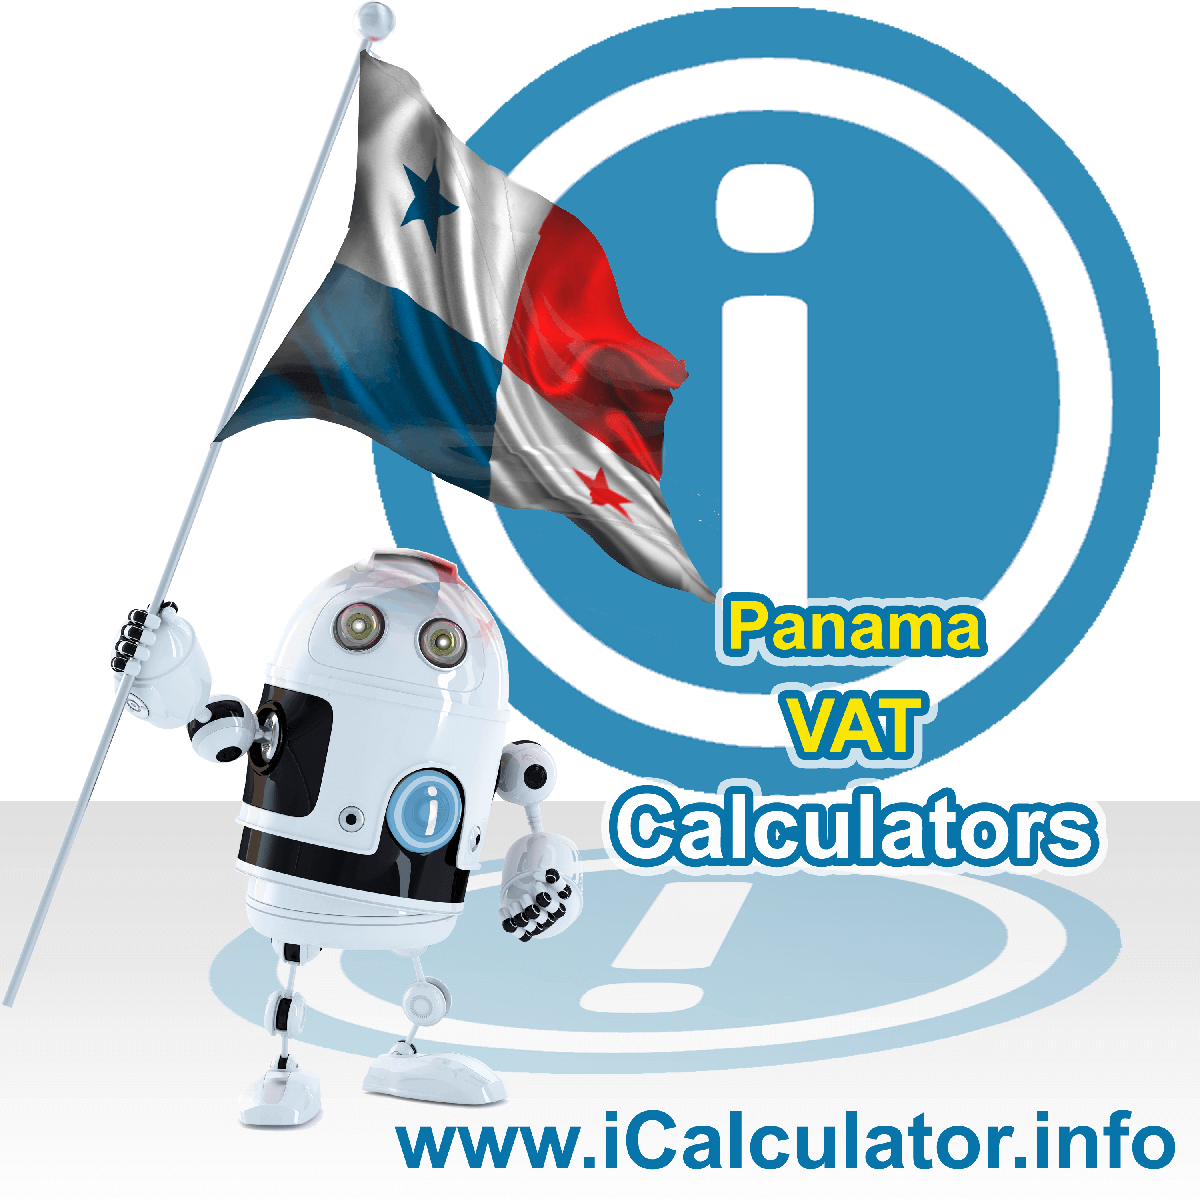 Panama VAT Calculator. This image shows the Panama flag and information relating to the VAT formula used for calculating Value Added Tax in Panama using the Panama VAT Calculator in 2021